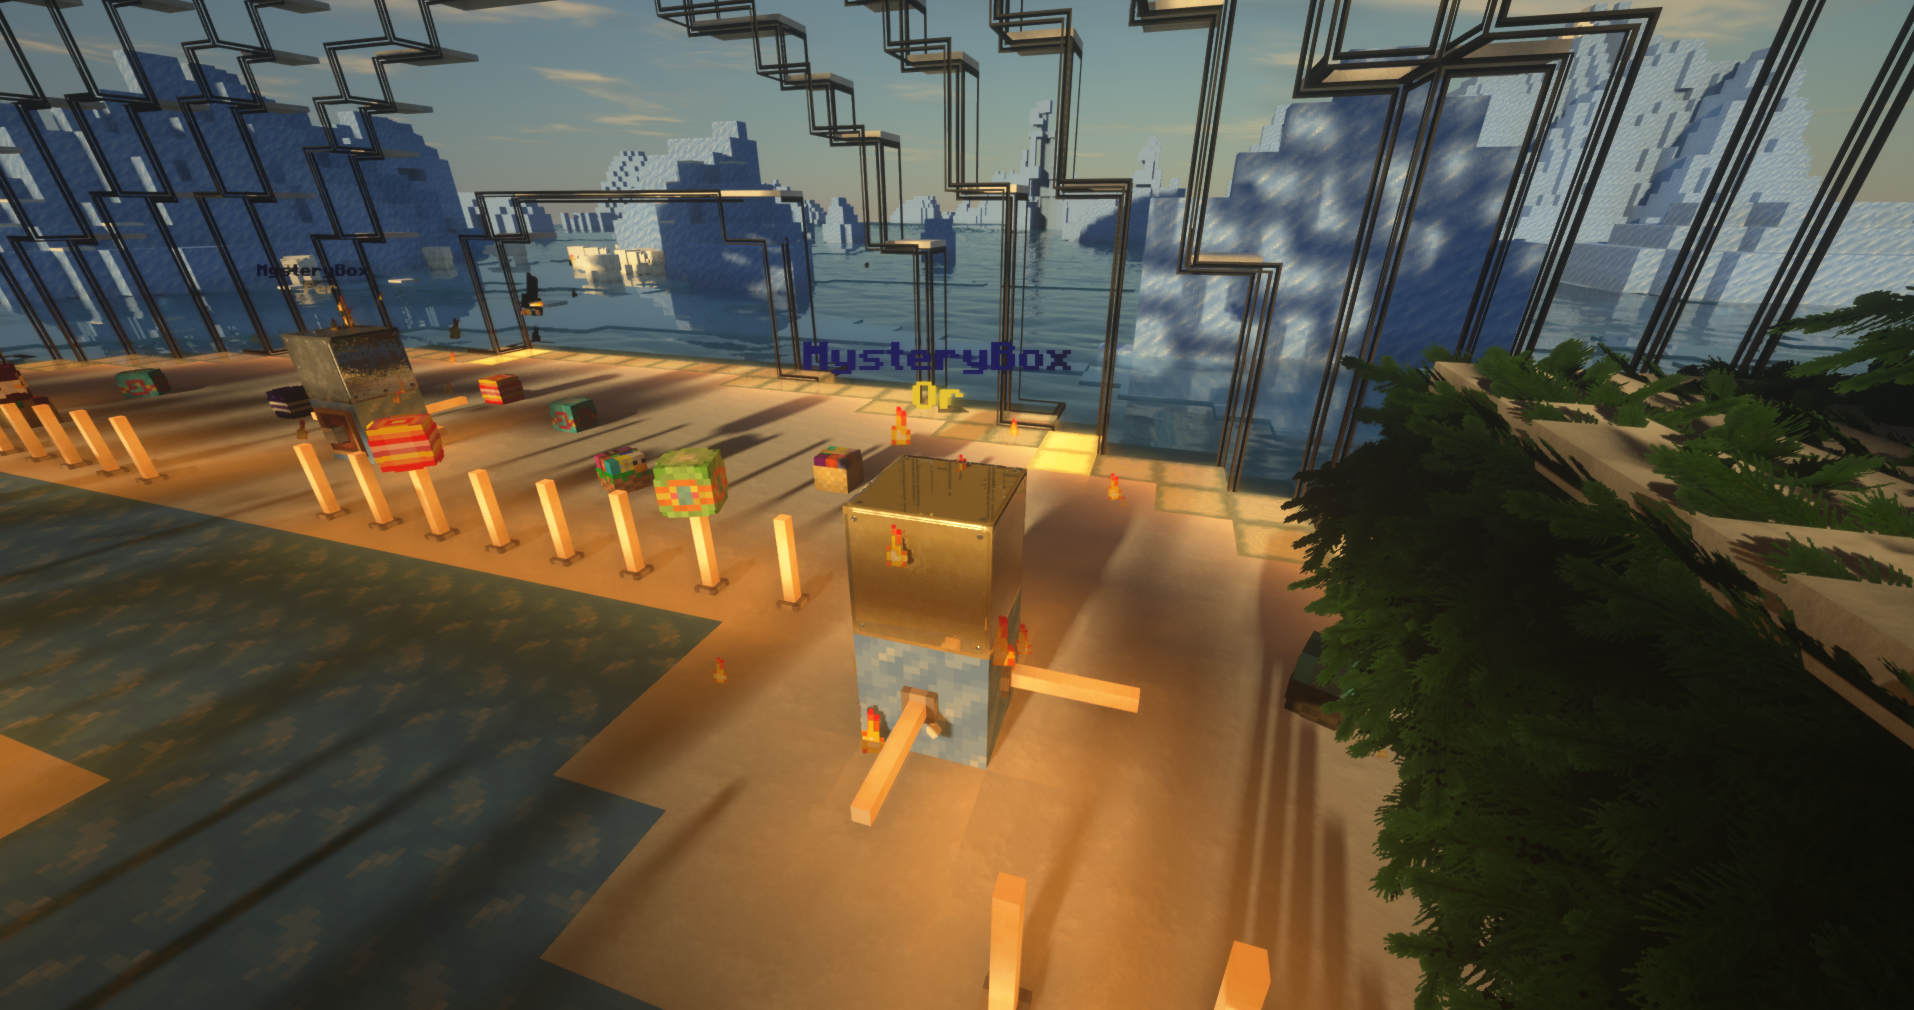 5f9d8c9dec357-Mysterybox shaders 2.png